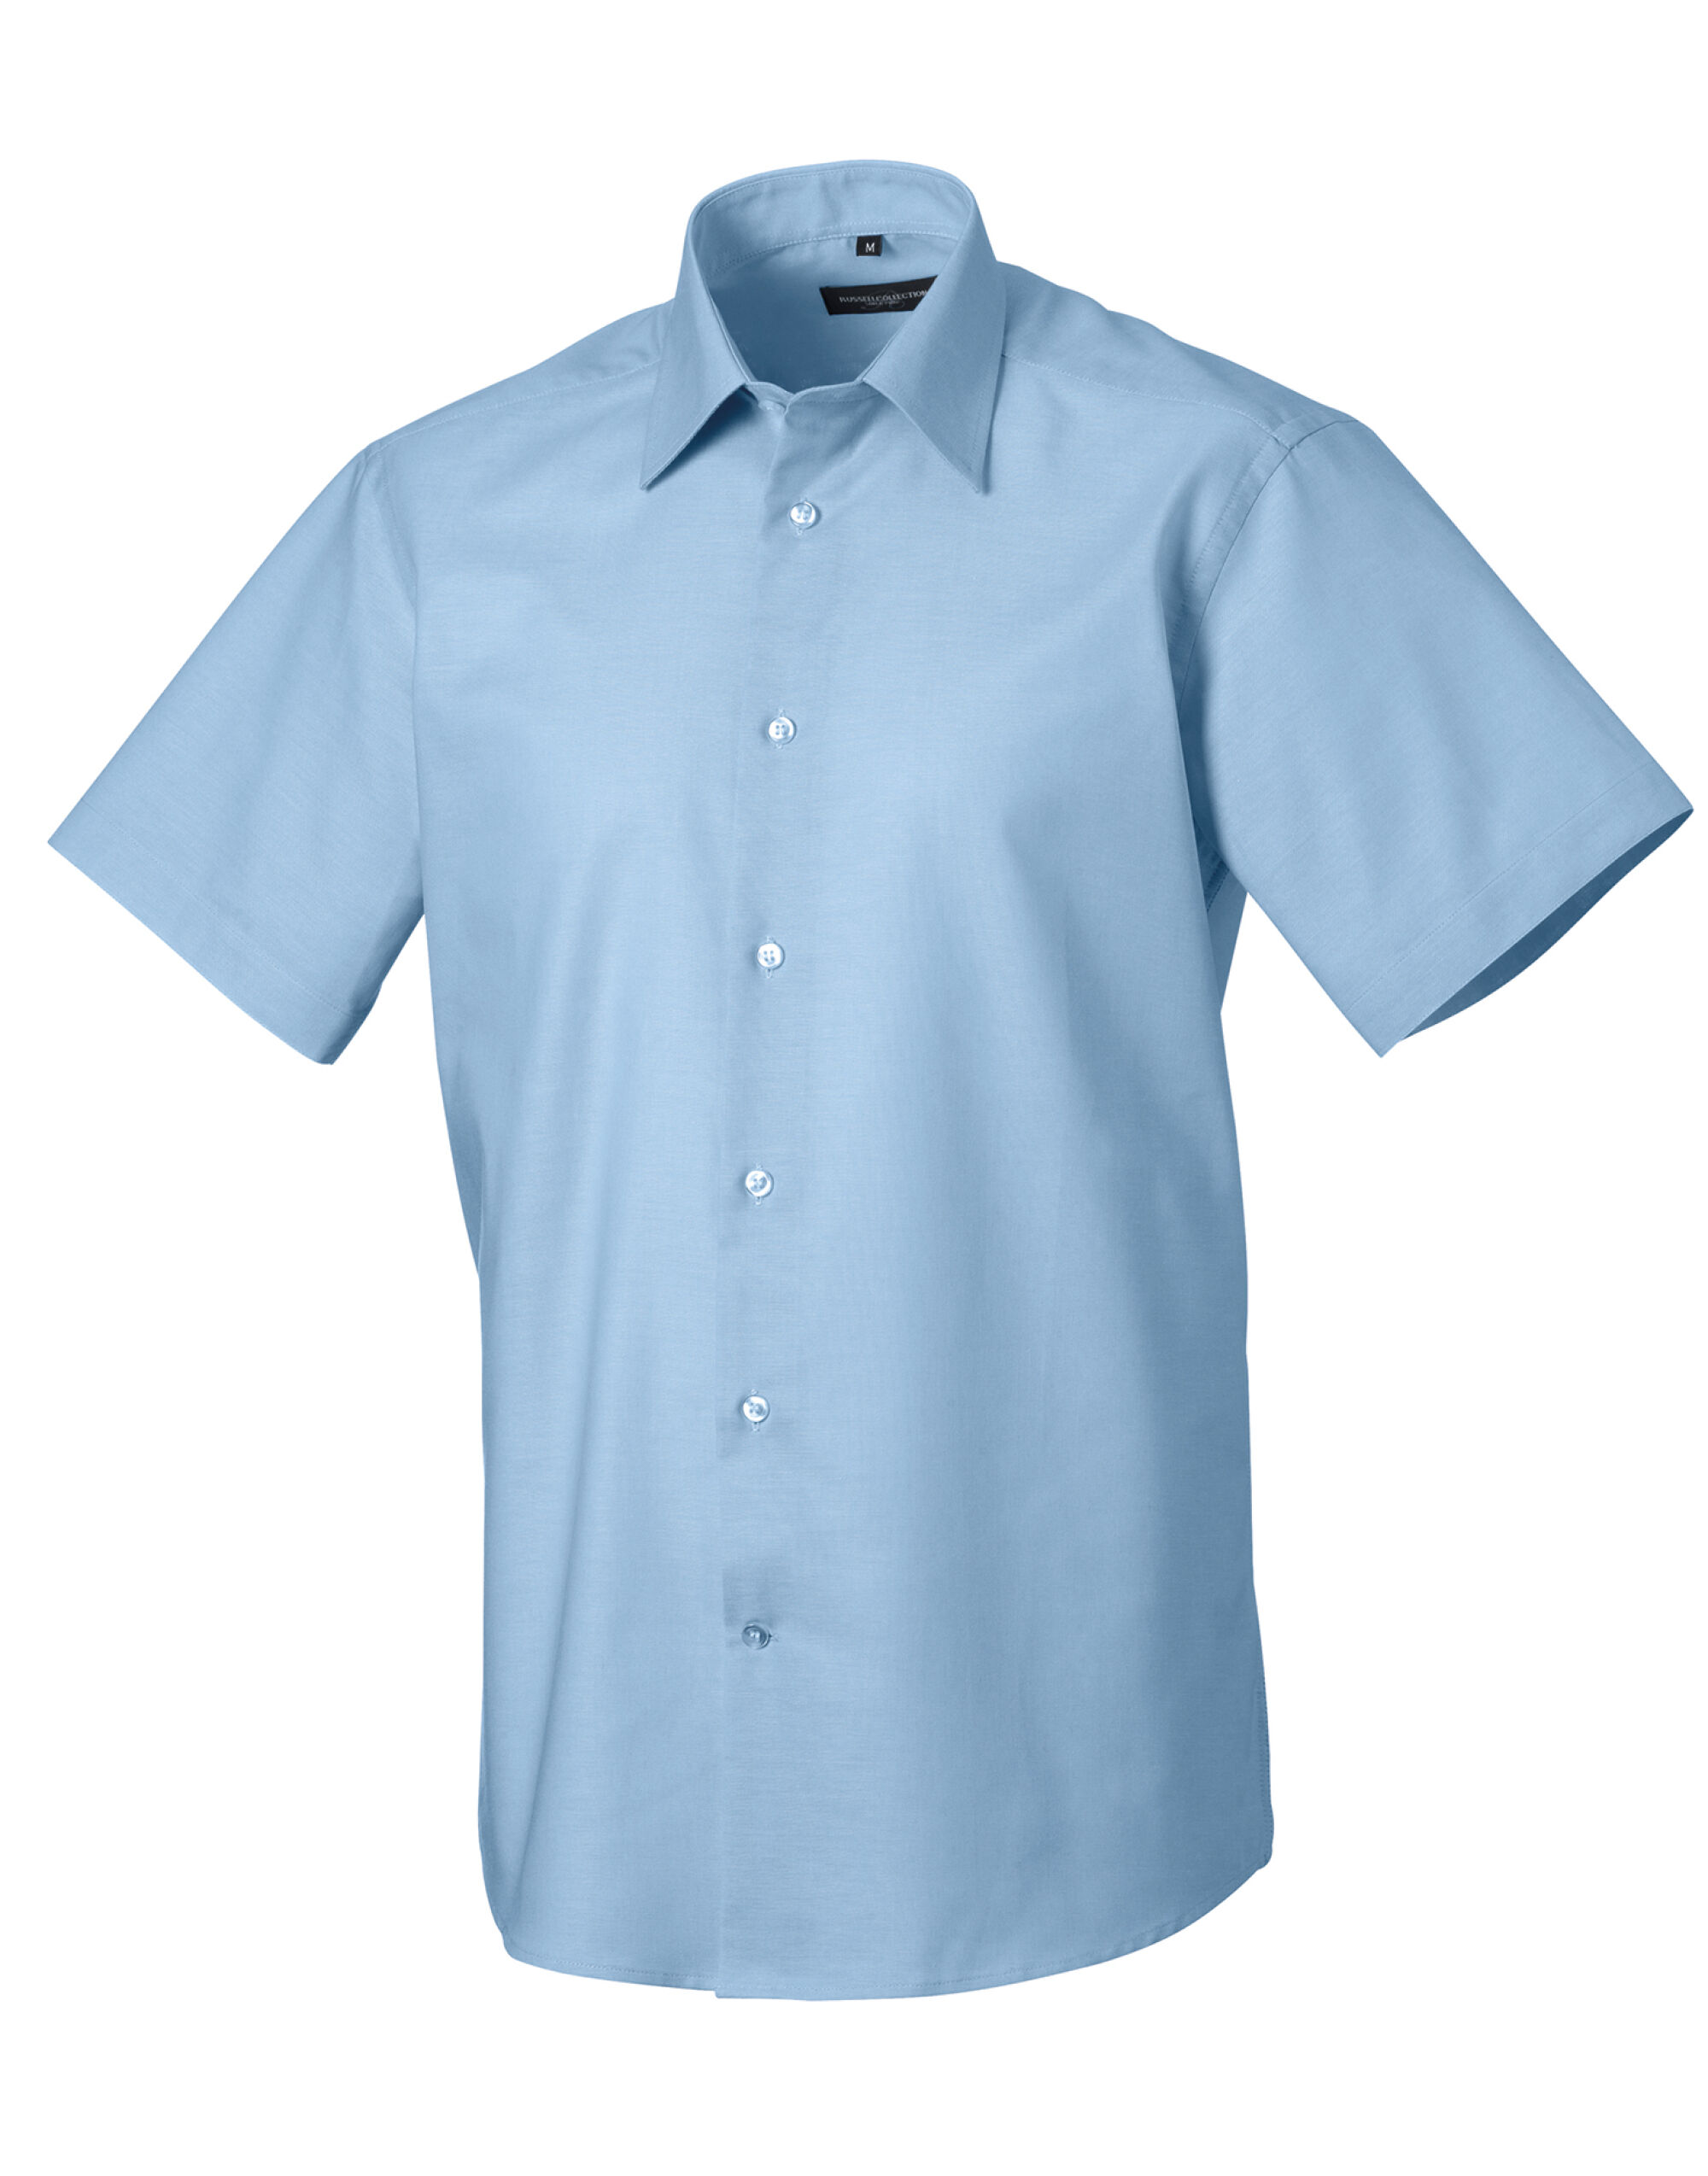 Men's Short Sleeve Easy Care Tailored Oxford Shirt